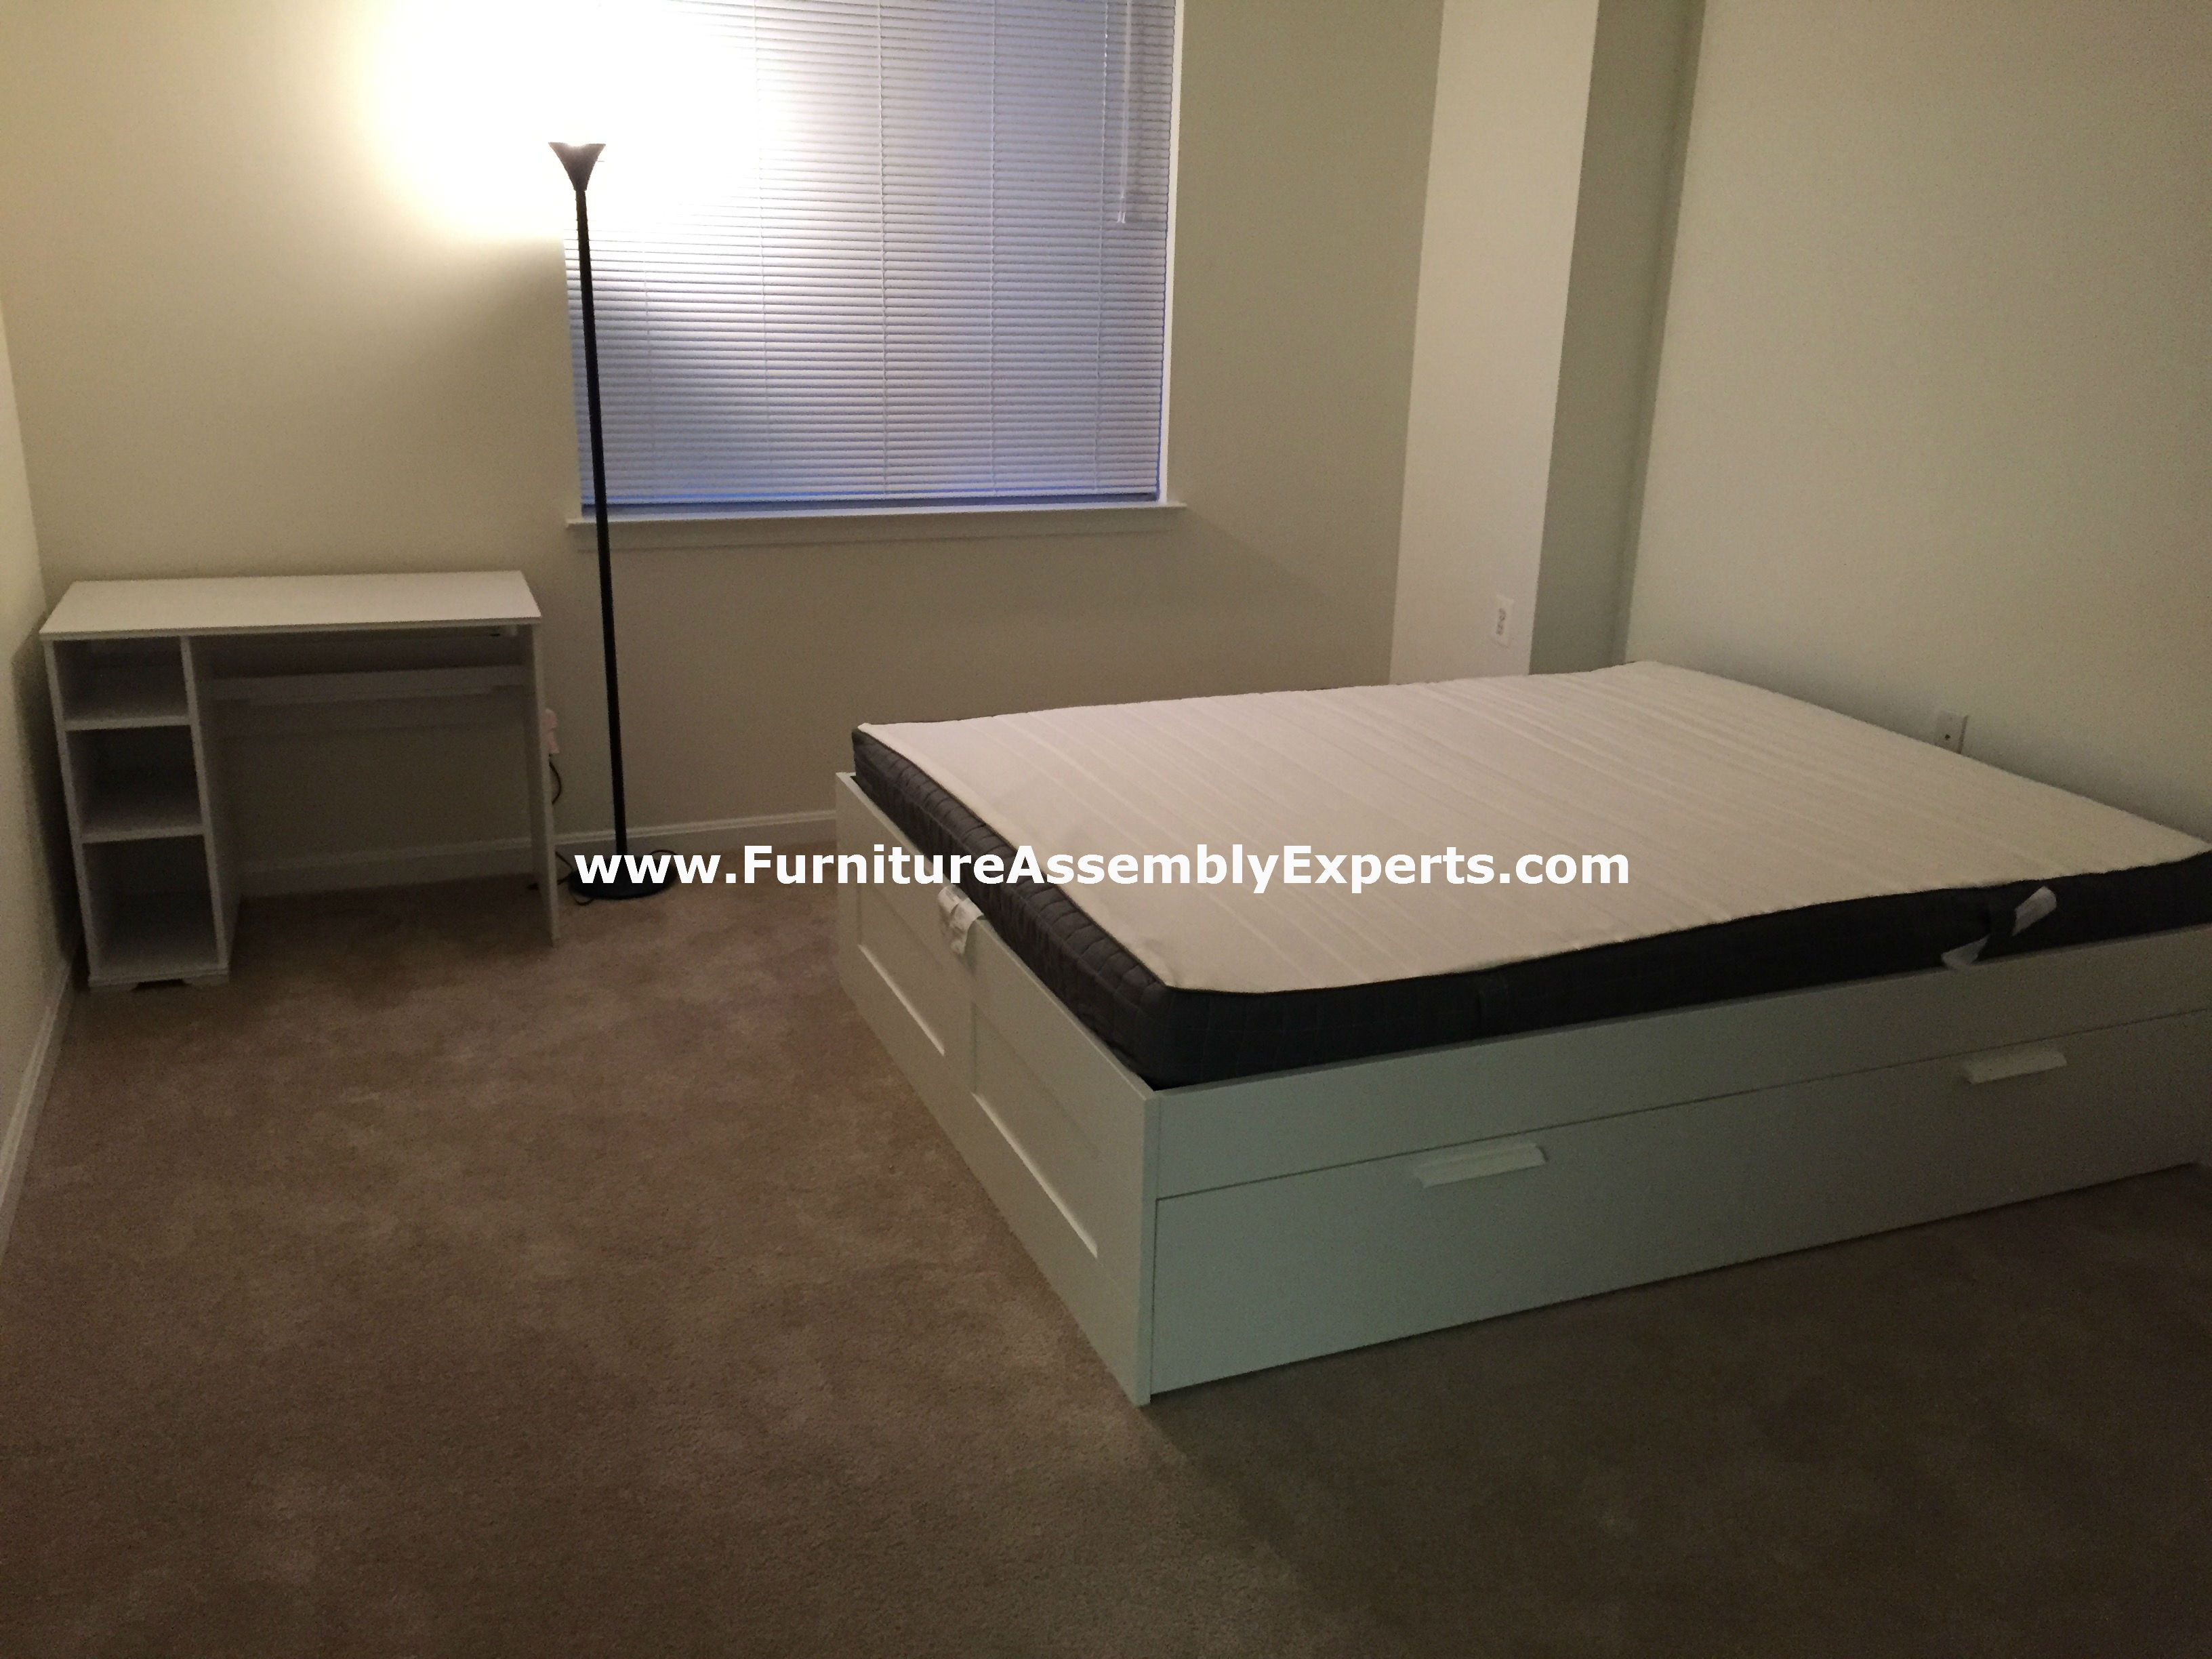 Ikea Brimnes Storage Bed And Desk Assembled In Capitol Heights MD By  Furniture Assembly Experts LLC